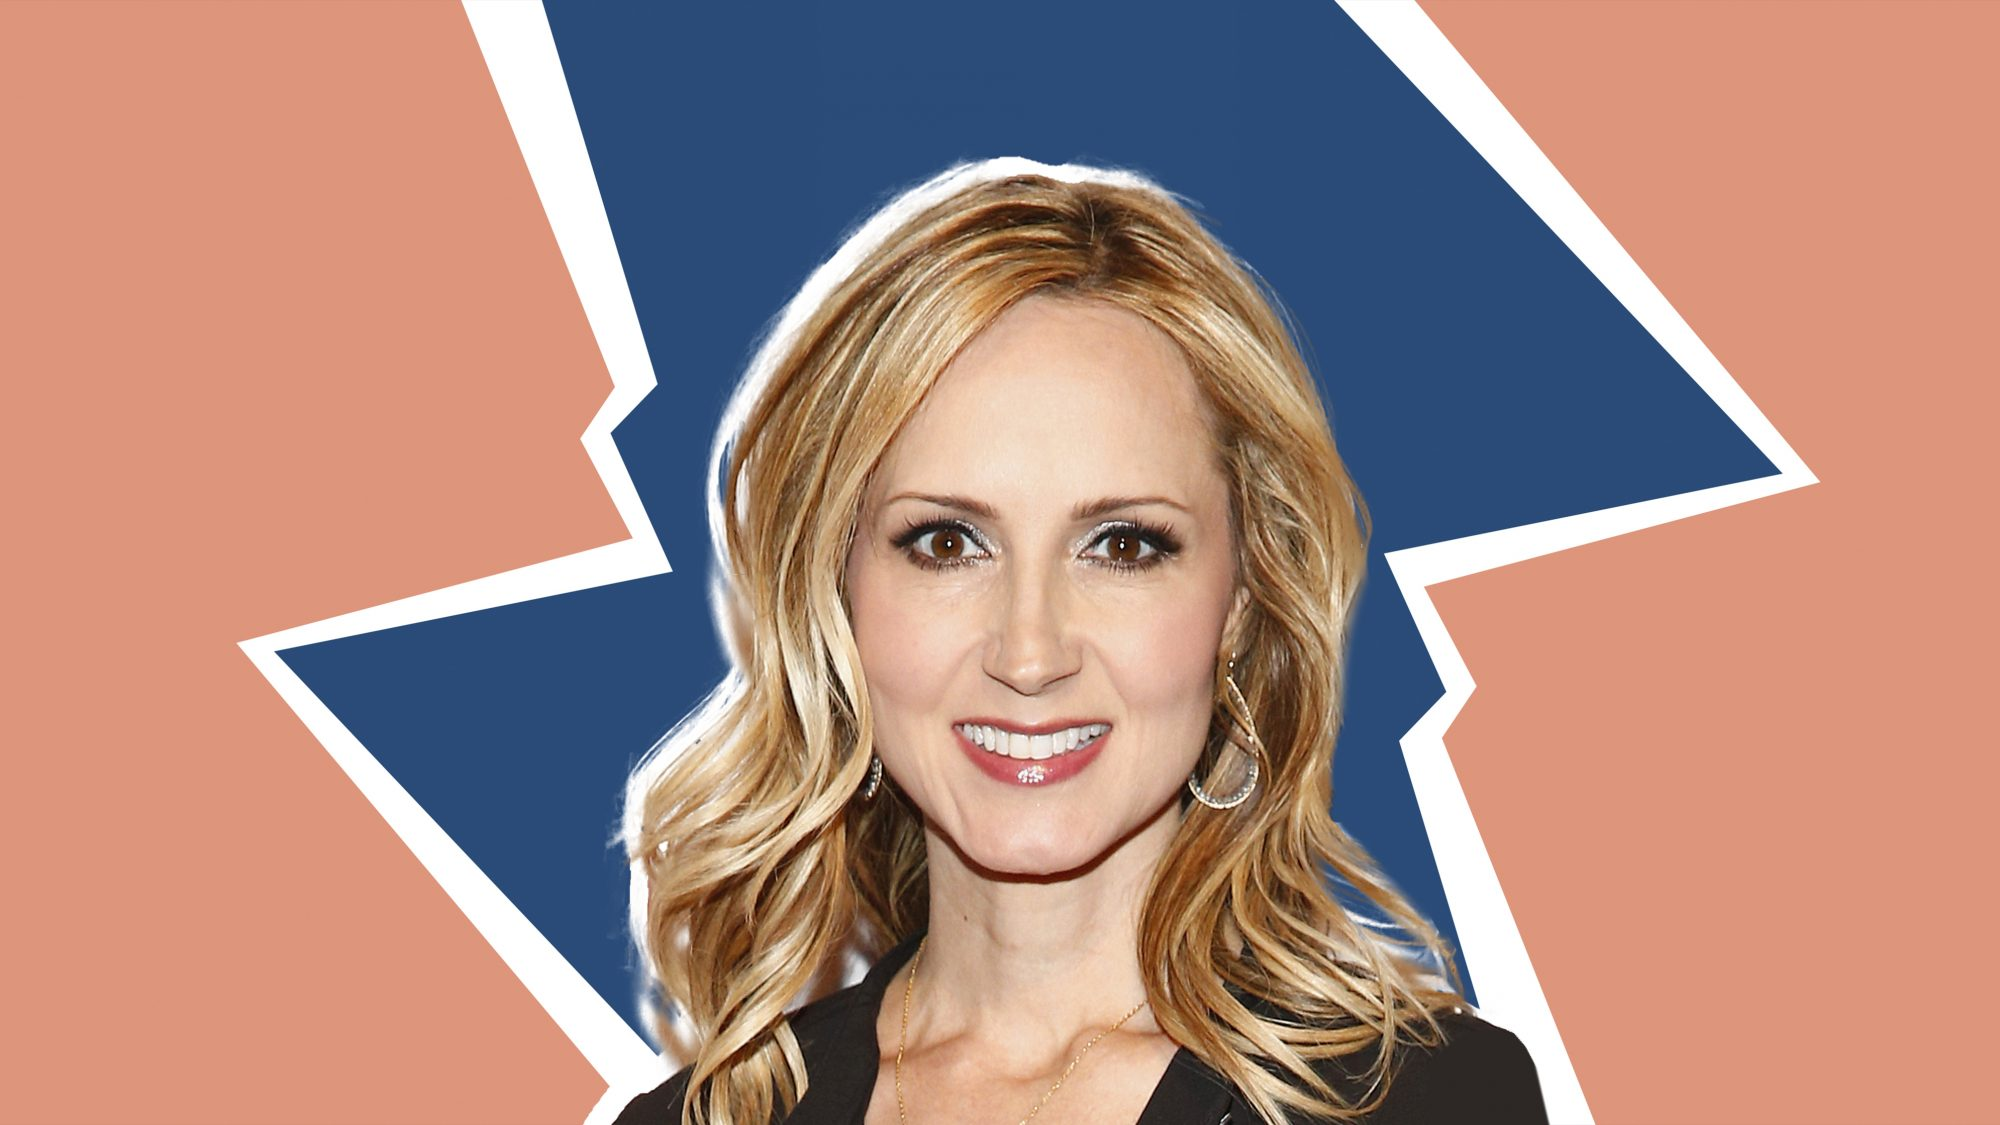 Singer Chely Wright Mistook Her Stroke for a Bad Migraine. These are the Symptoms She May Have Missed